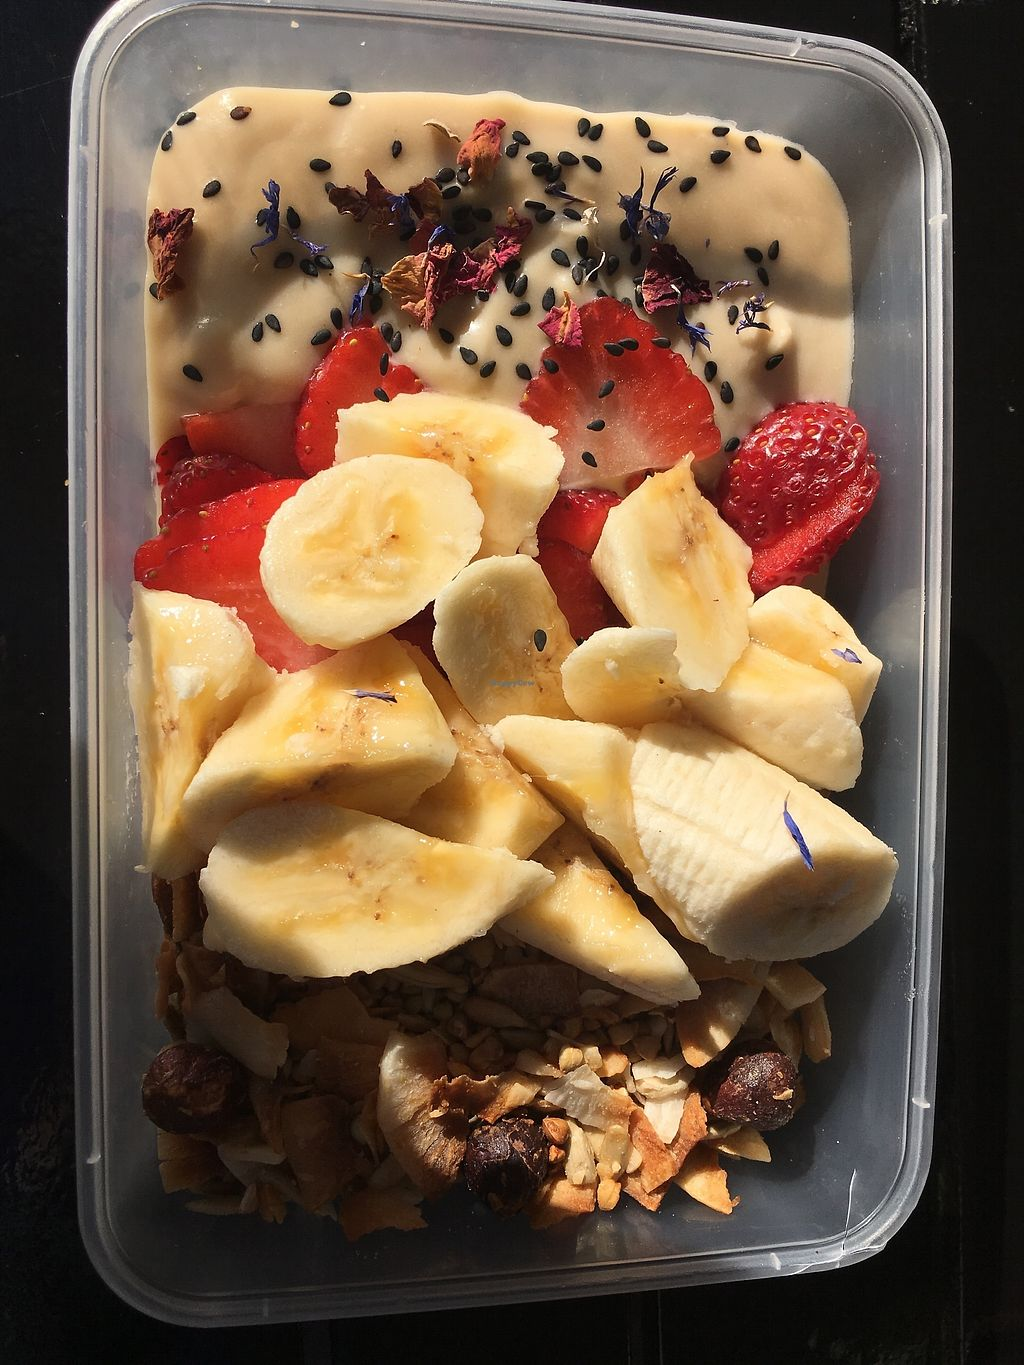 """Photo of Samadhi Whole Foods  by <a href=""""/members/profile/MelanieAlden"""">MelanieAlden</a> <br/>Granola Bowl with Coconut Yoghurt (take away)  <br/> July 27, 2017  - <a href='/contact/abuse/image/85607/285698'>Report</a>"""